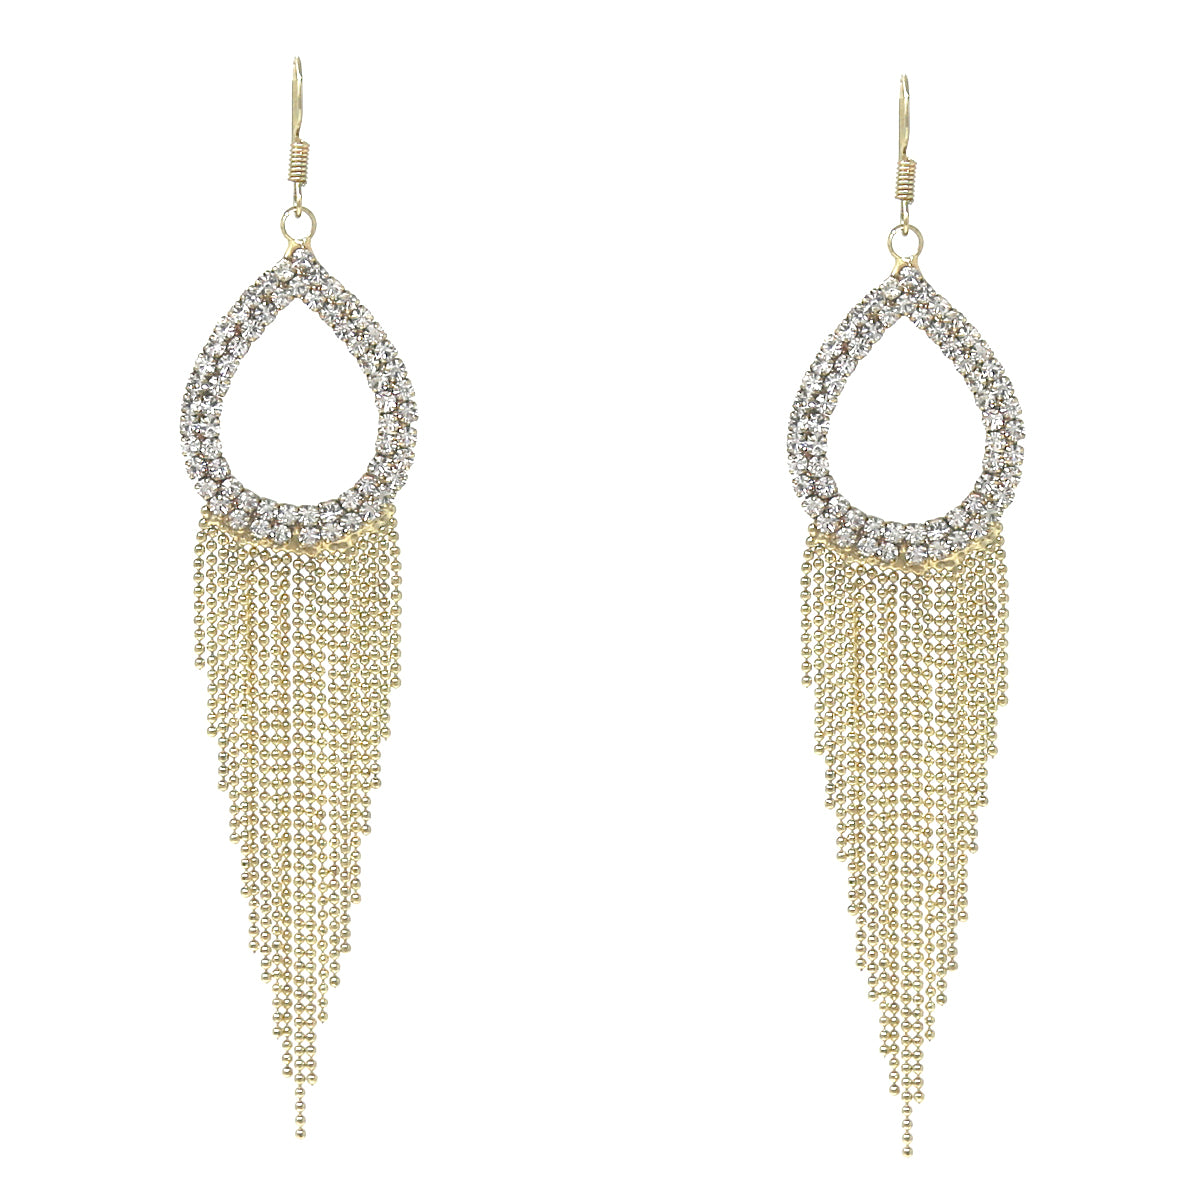 Rhinestone Pave Teardrop Ball Chain Fringe Drop Earrings